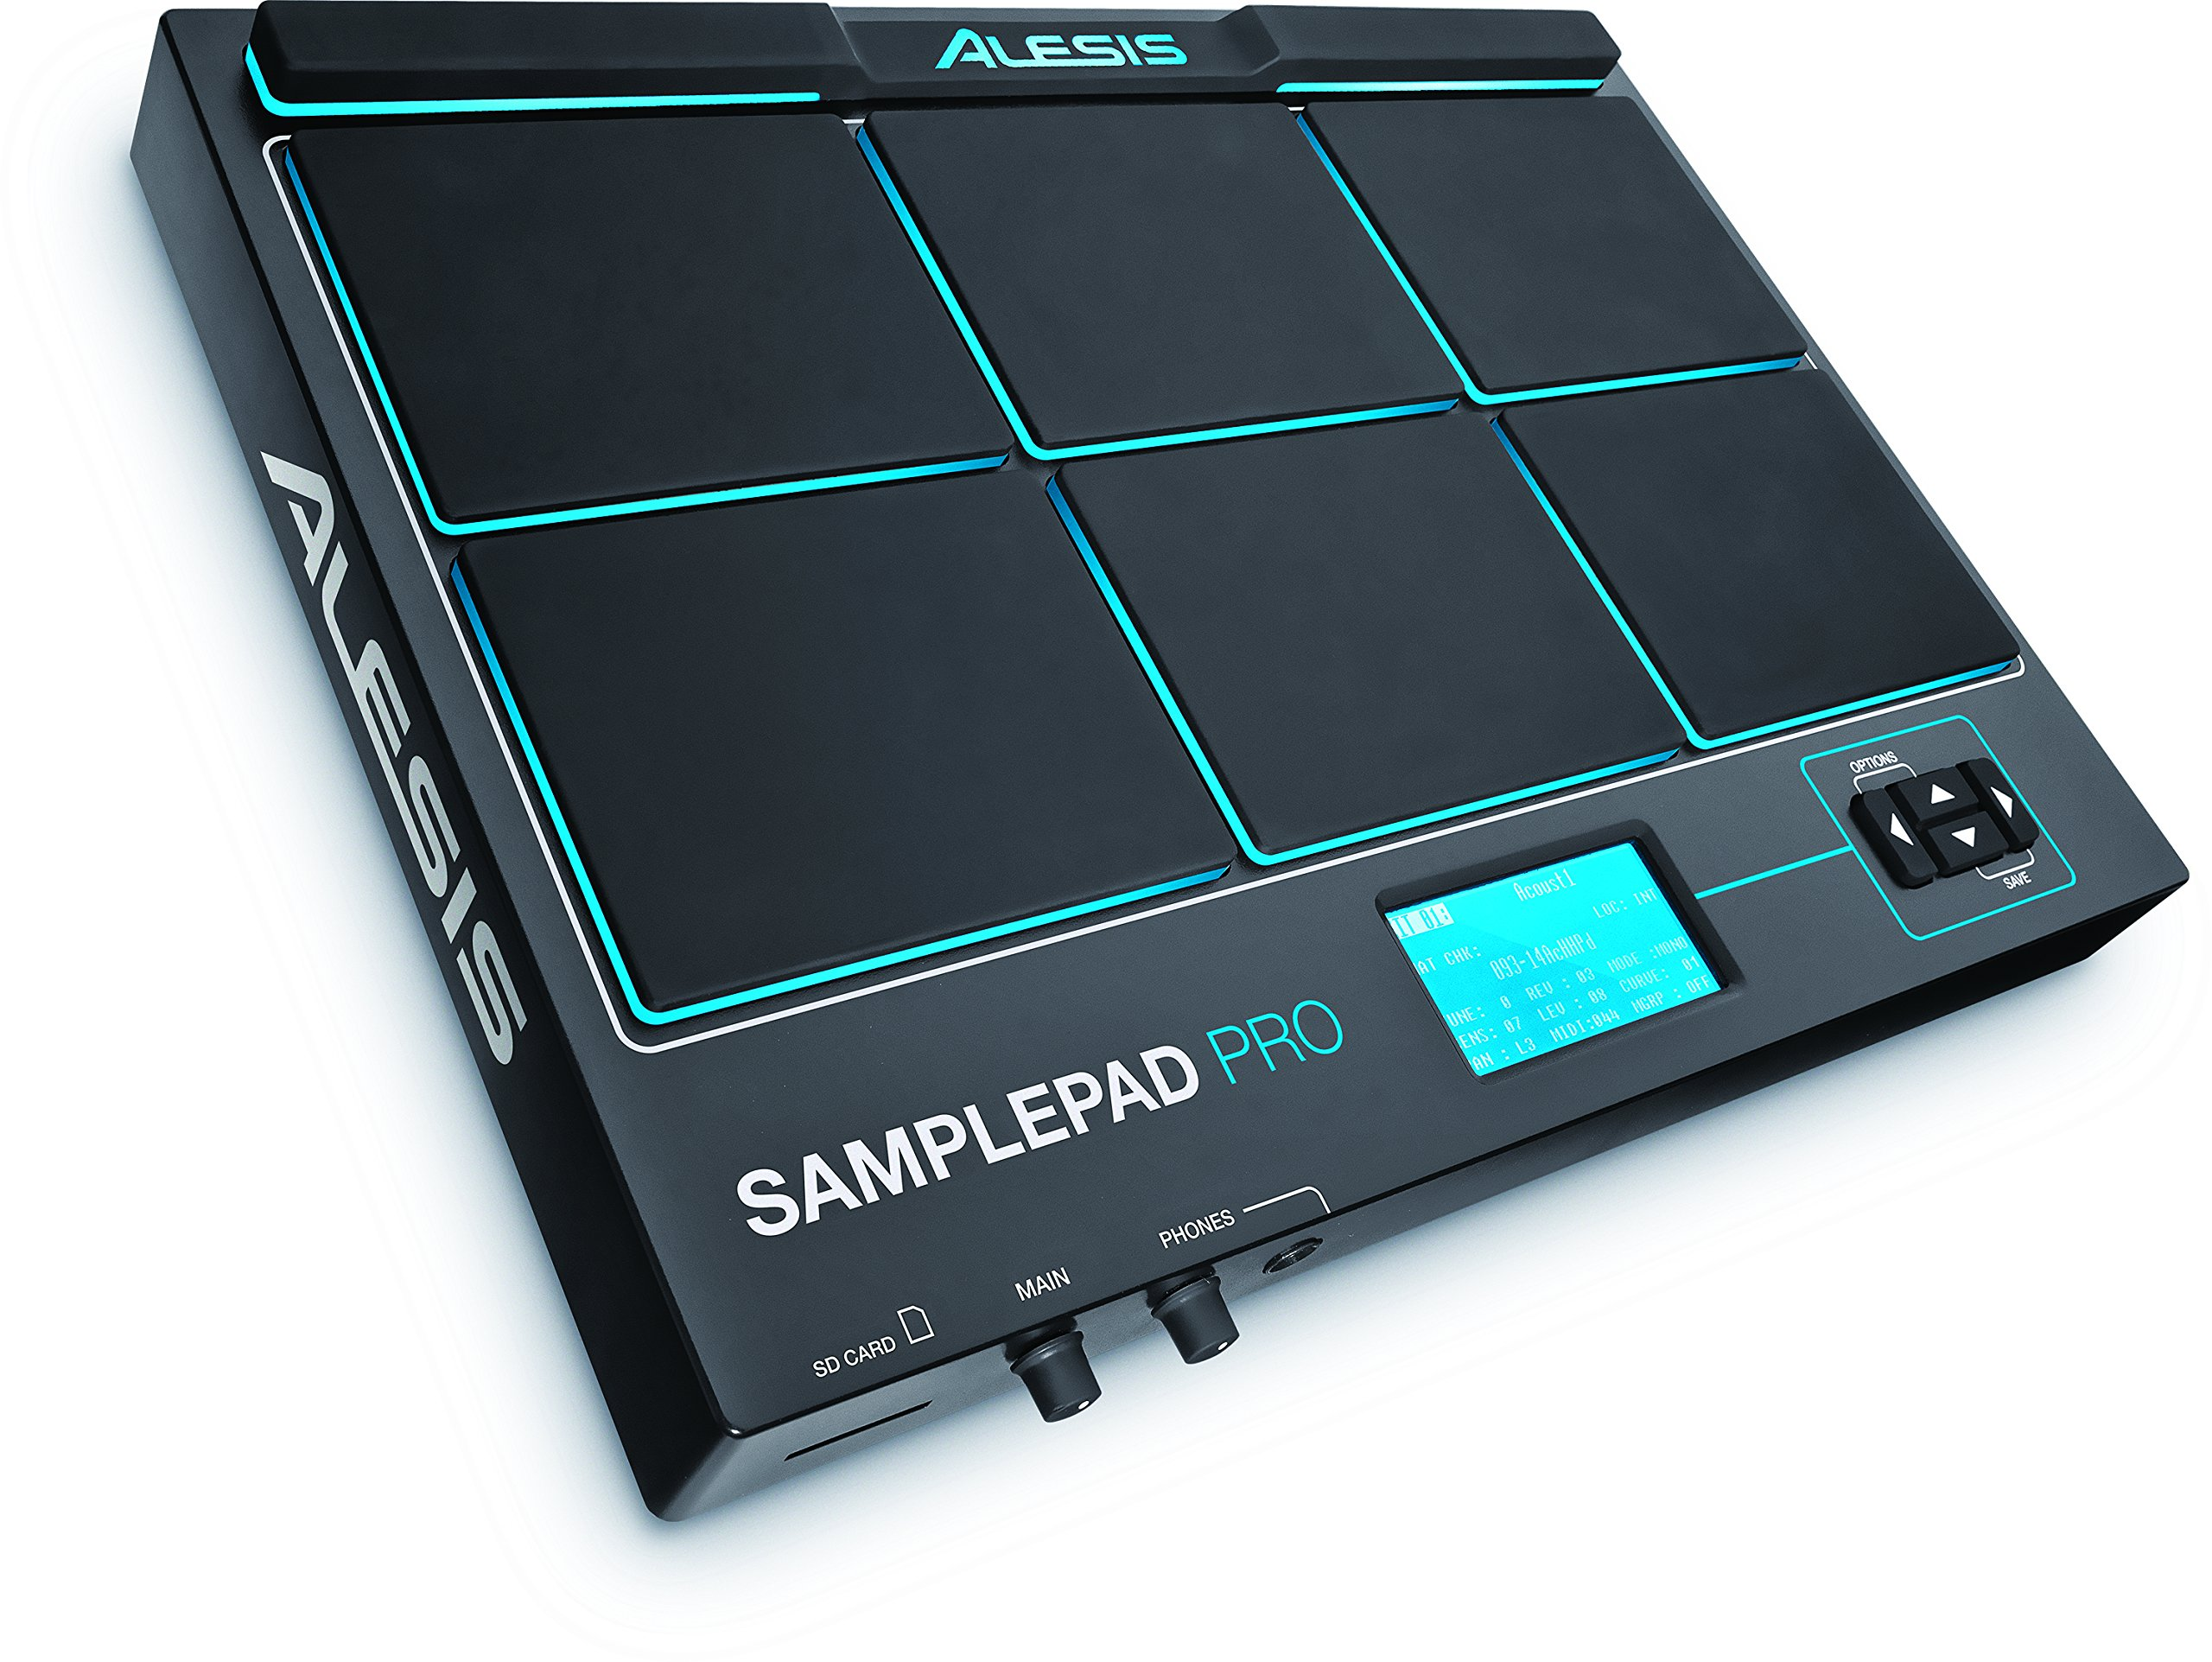 Alesis Sample Pad Pro | Percussion and Sample-Triggering Instrument With Responsive Dual Zone Rubber Pads, Active Blue LED Illumination, Expansion options for 2 more Triggers and 200+ Built-in Sounds by Alesis